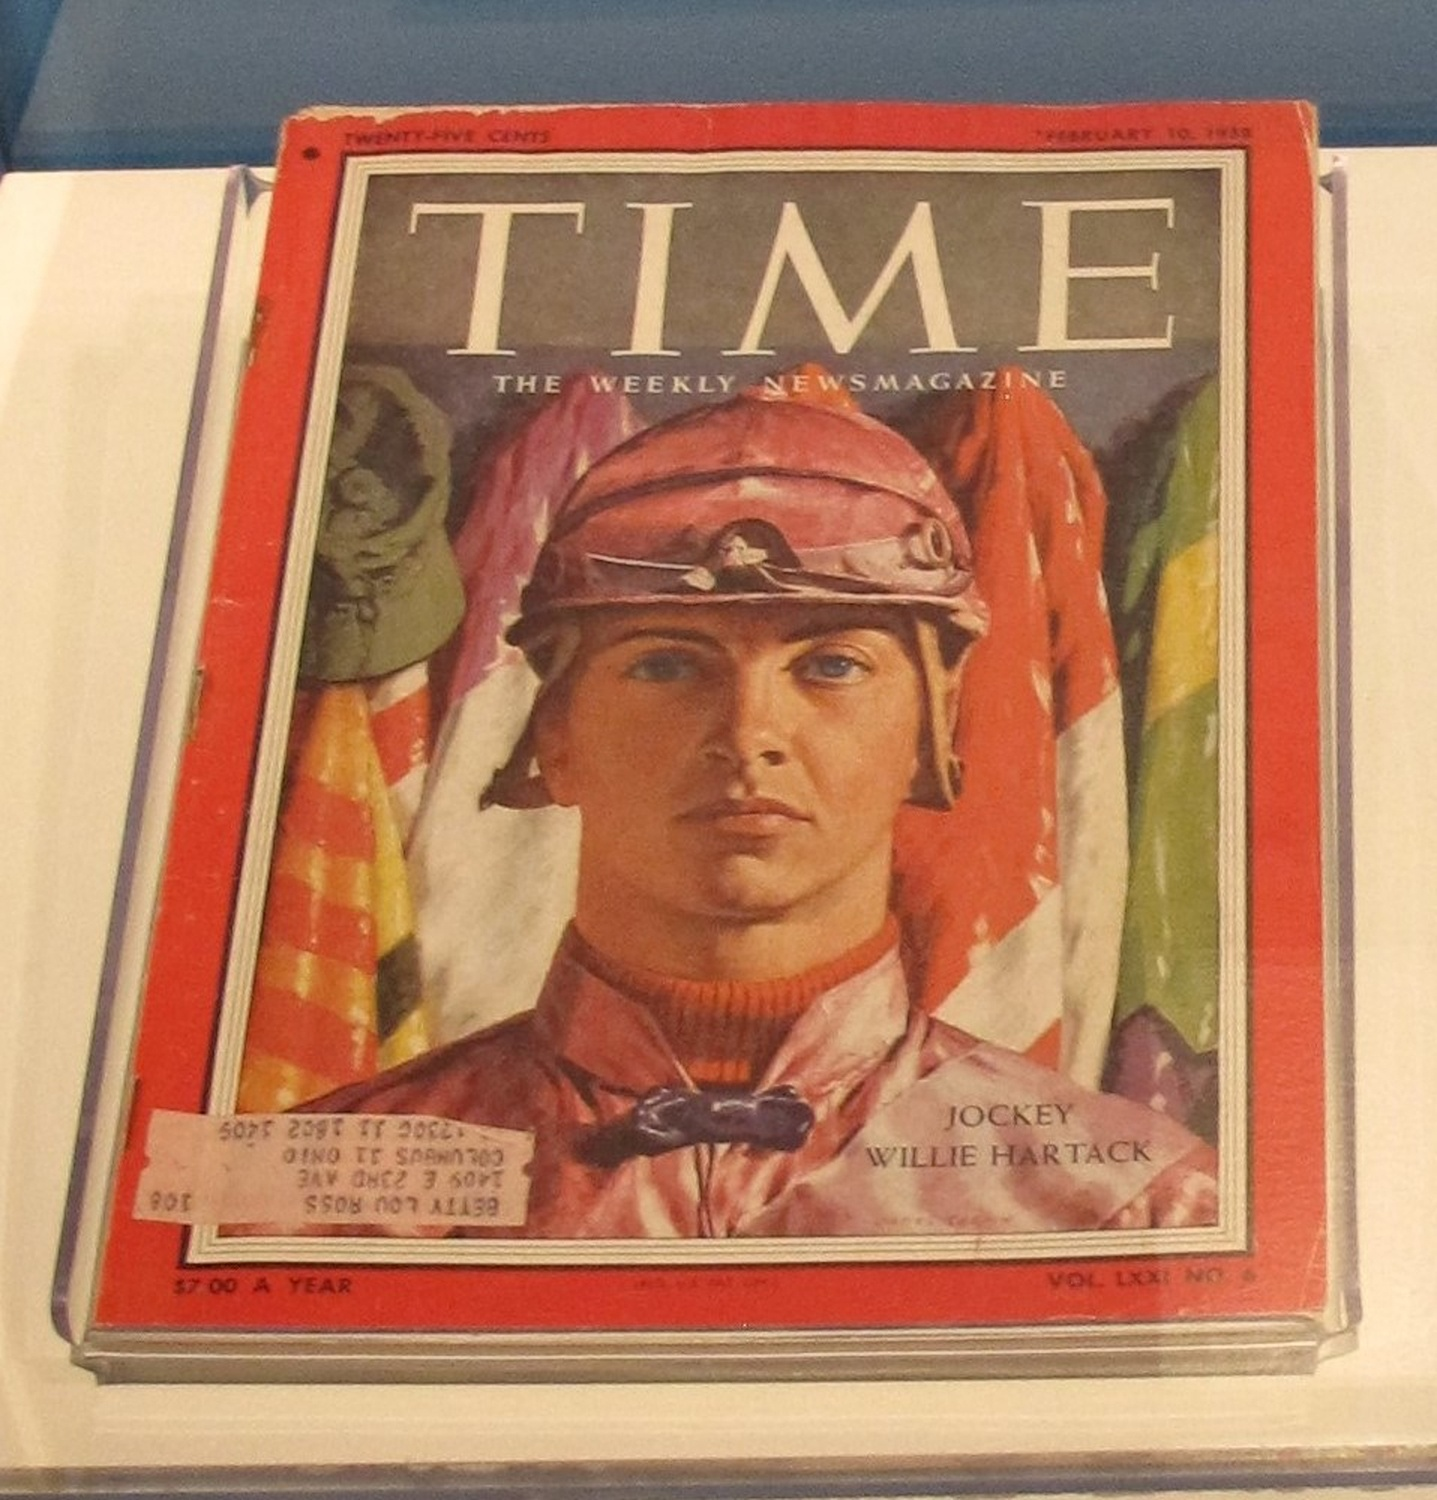 Time magazine with Bill Hartack on the cover, February 10, 1958. Currently on display in Smithsonian's Portraits of Pittsburgh: Works from the National Portrait Gallery, August 11, 2020.